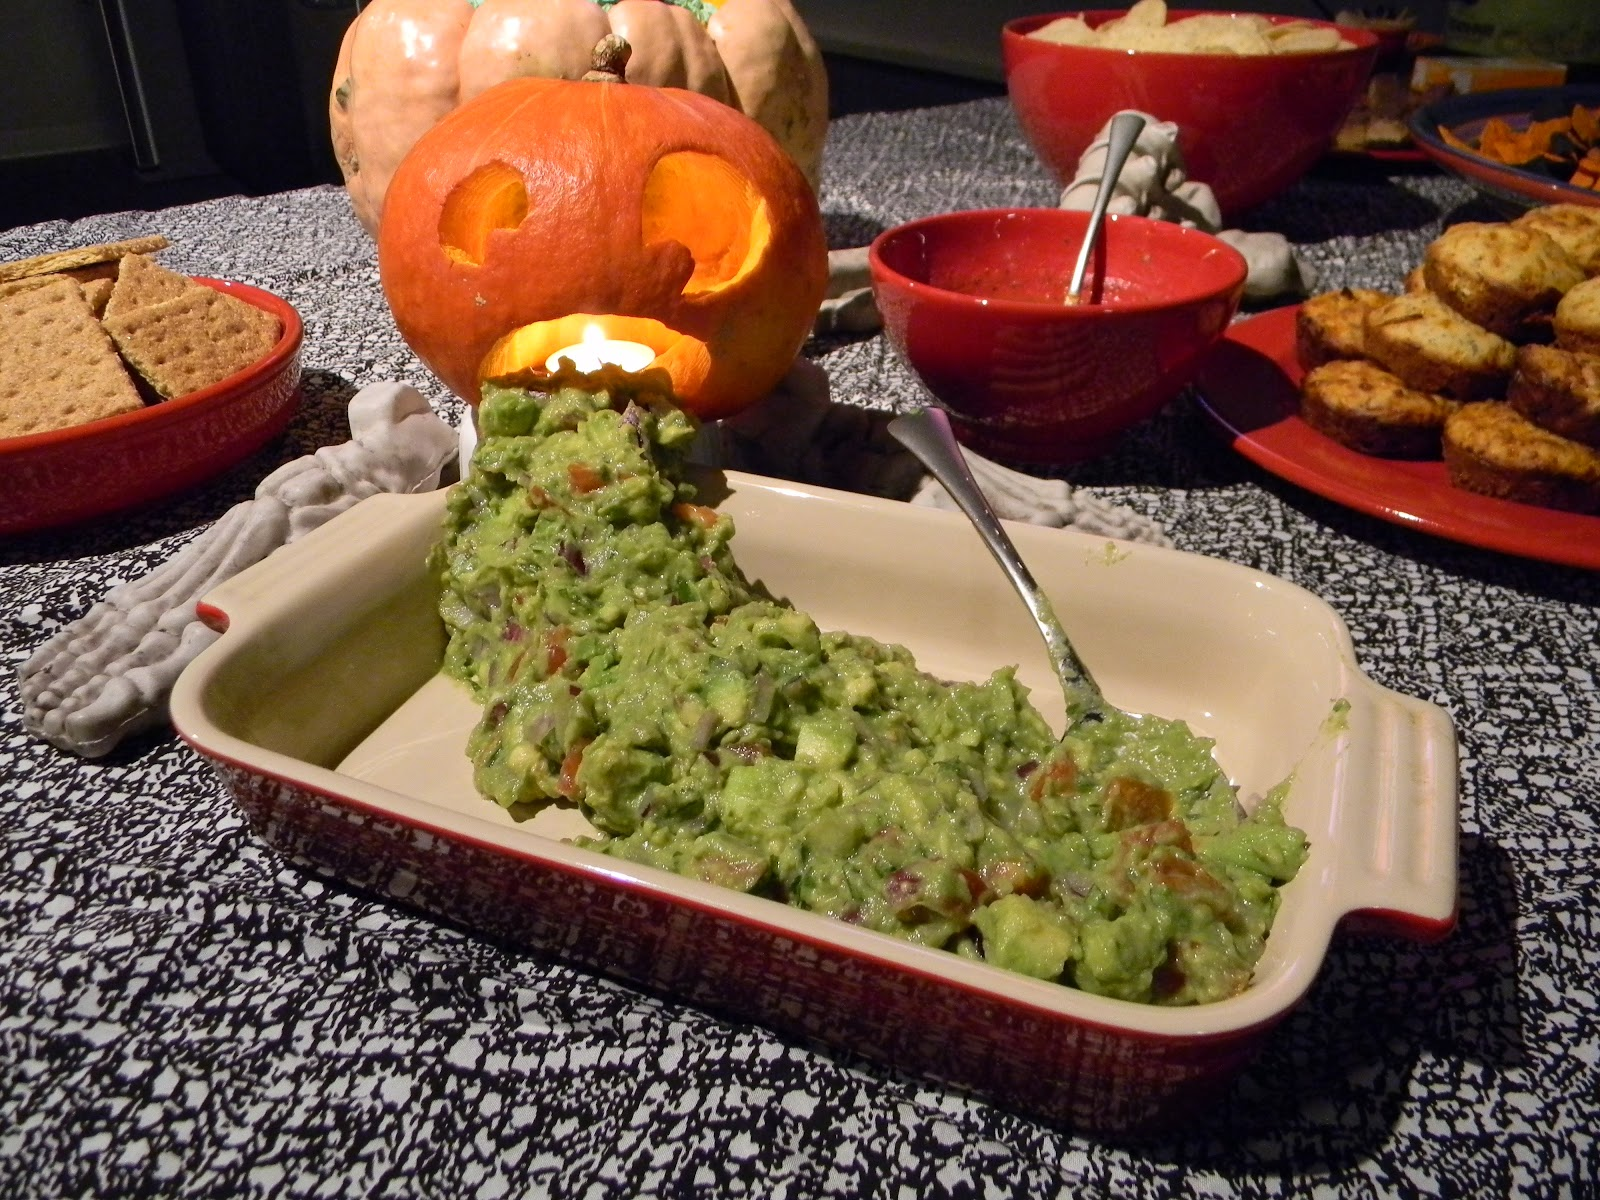 Not Adult halloween recipes